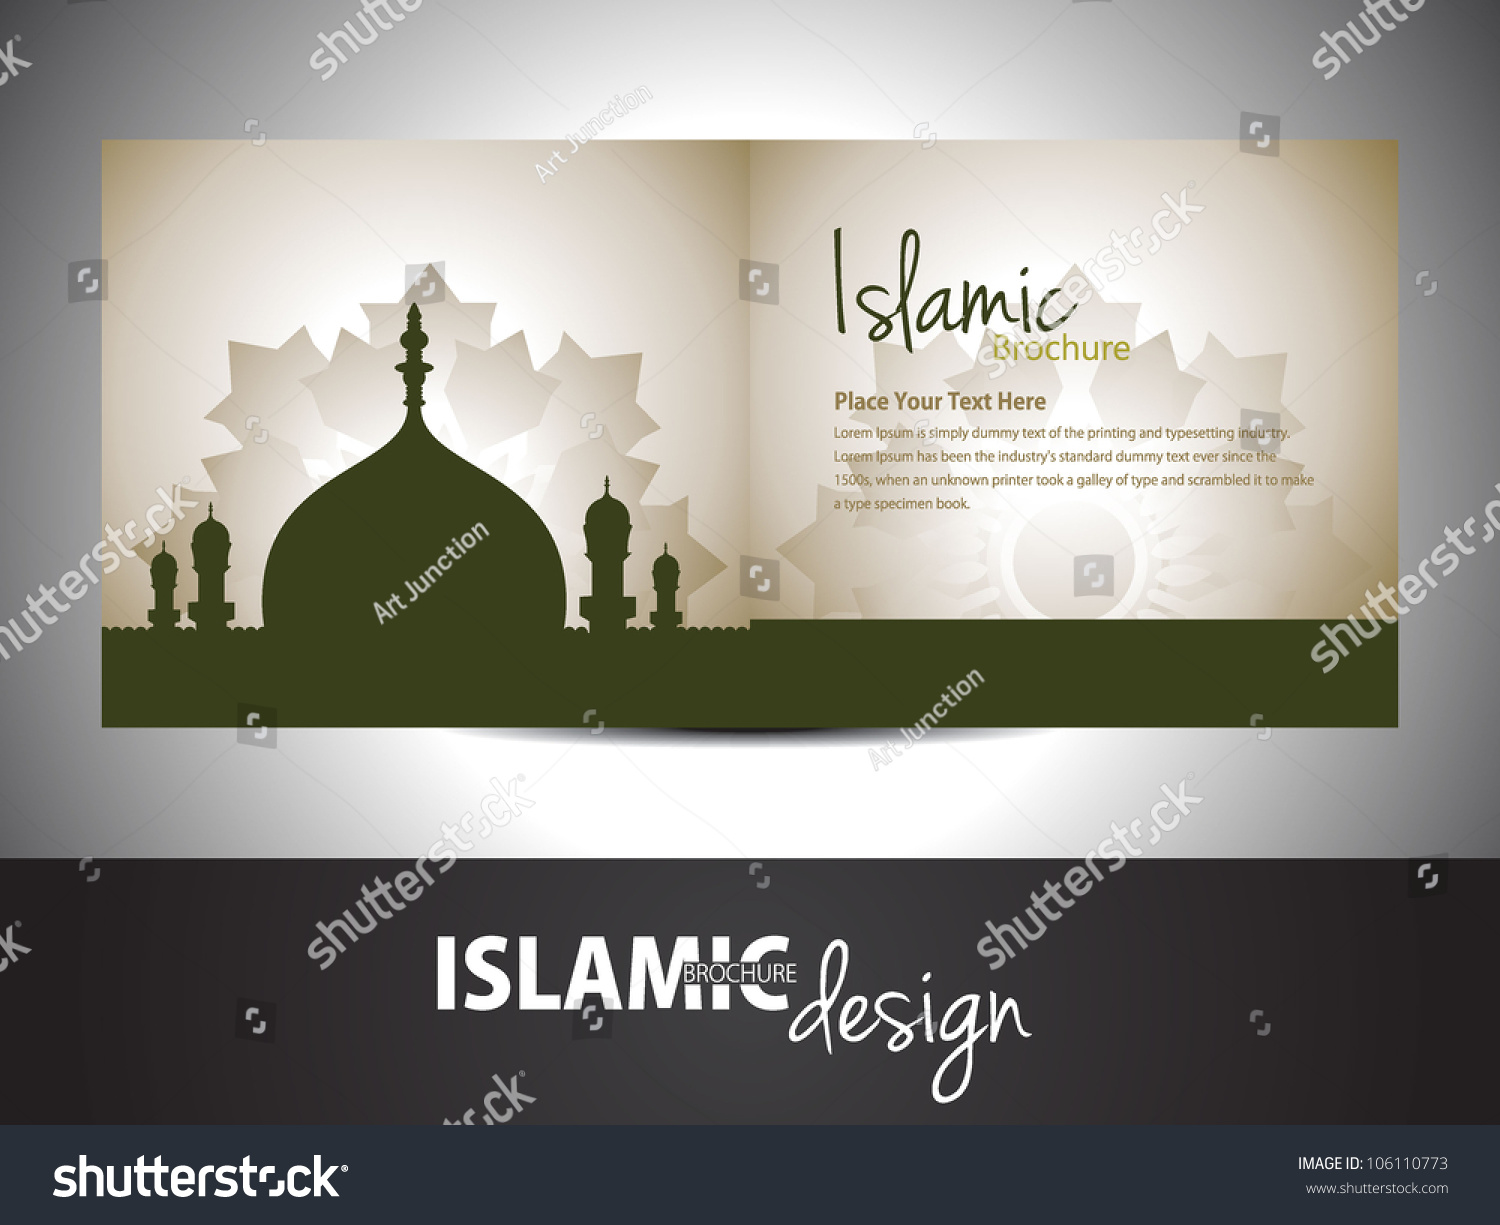 islamic brochure design - islamic brochure and cover design stock vector